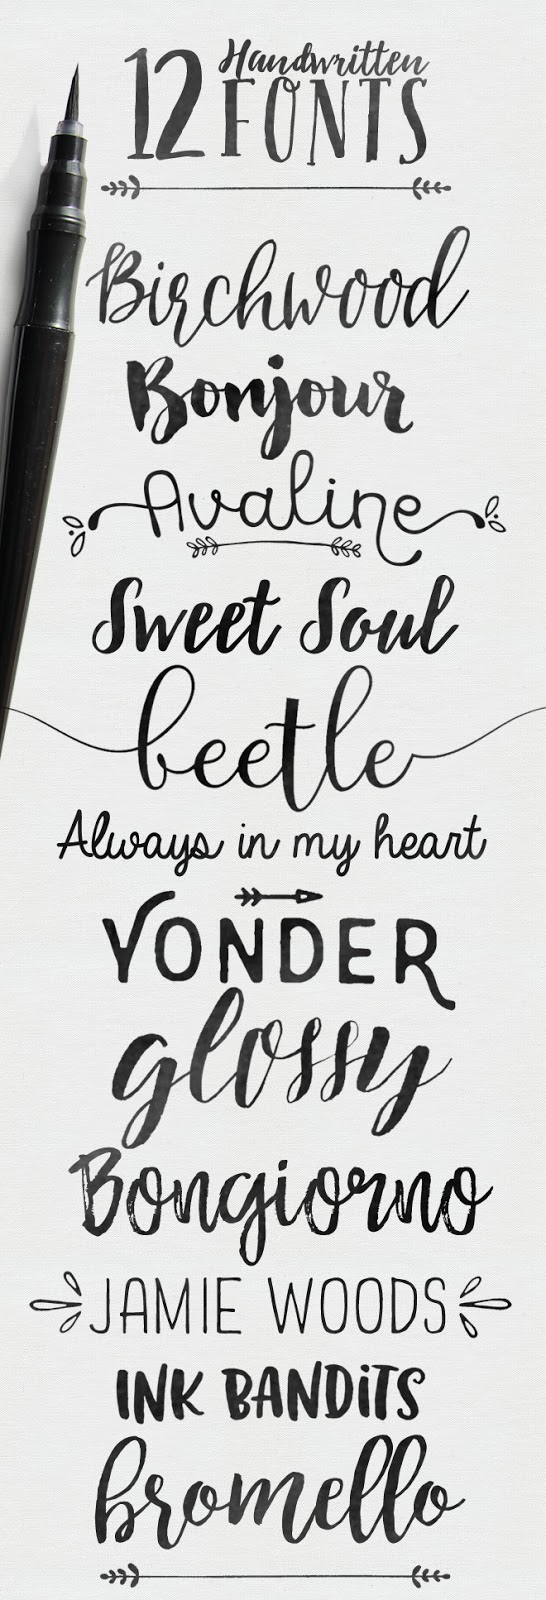 handwritten brush fonts, some free